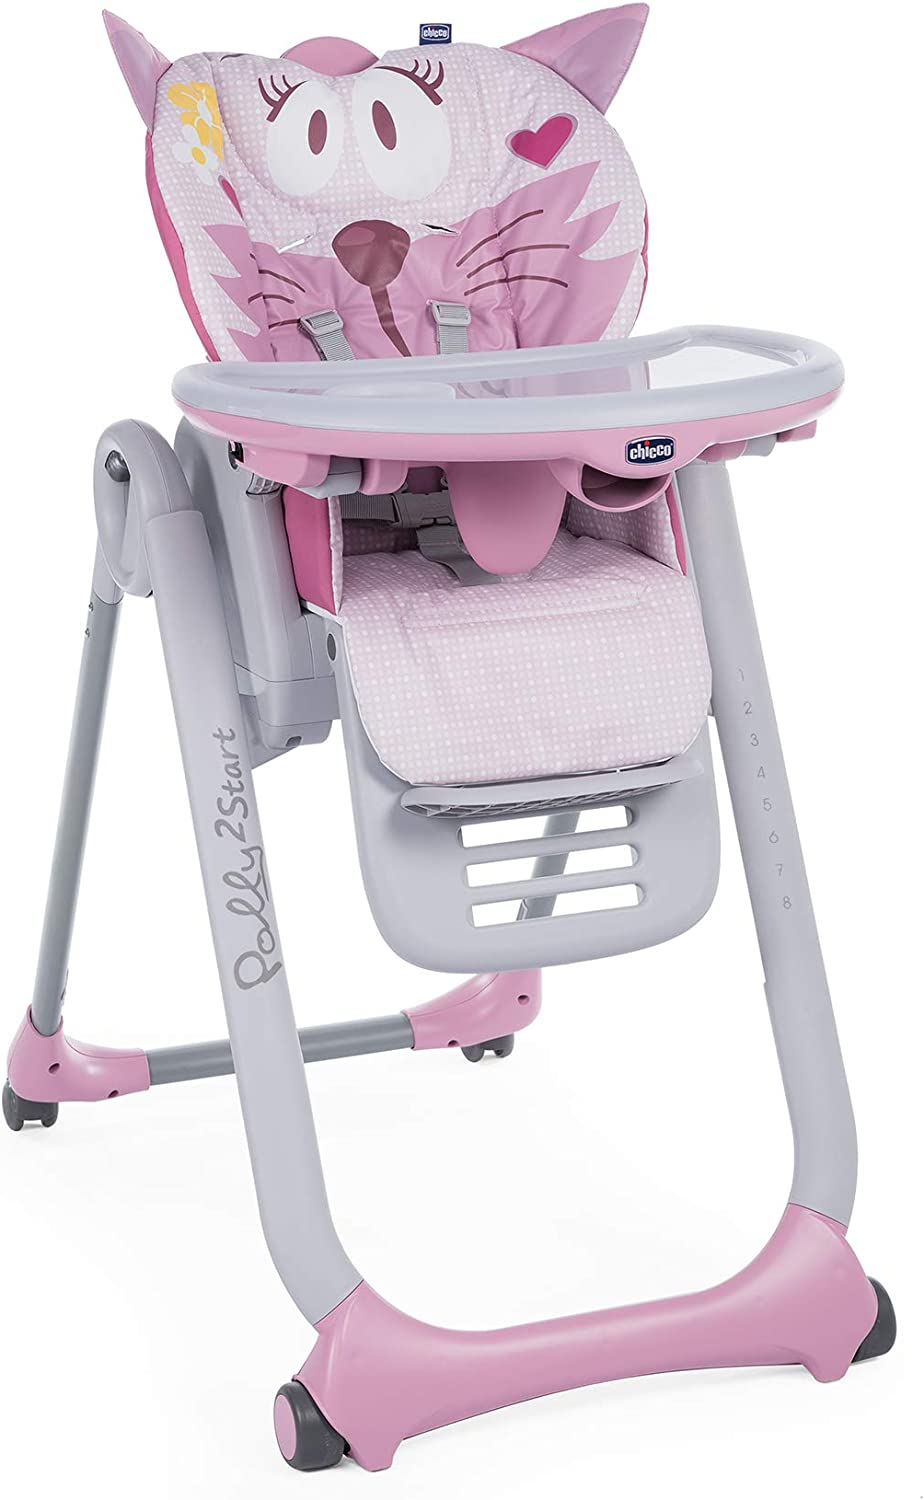 Chicco Polly 2 Start Compact Transformable High Chair and Hammock with 4 Wheels and Brakes for 0 3 Years Cat Miss Pink